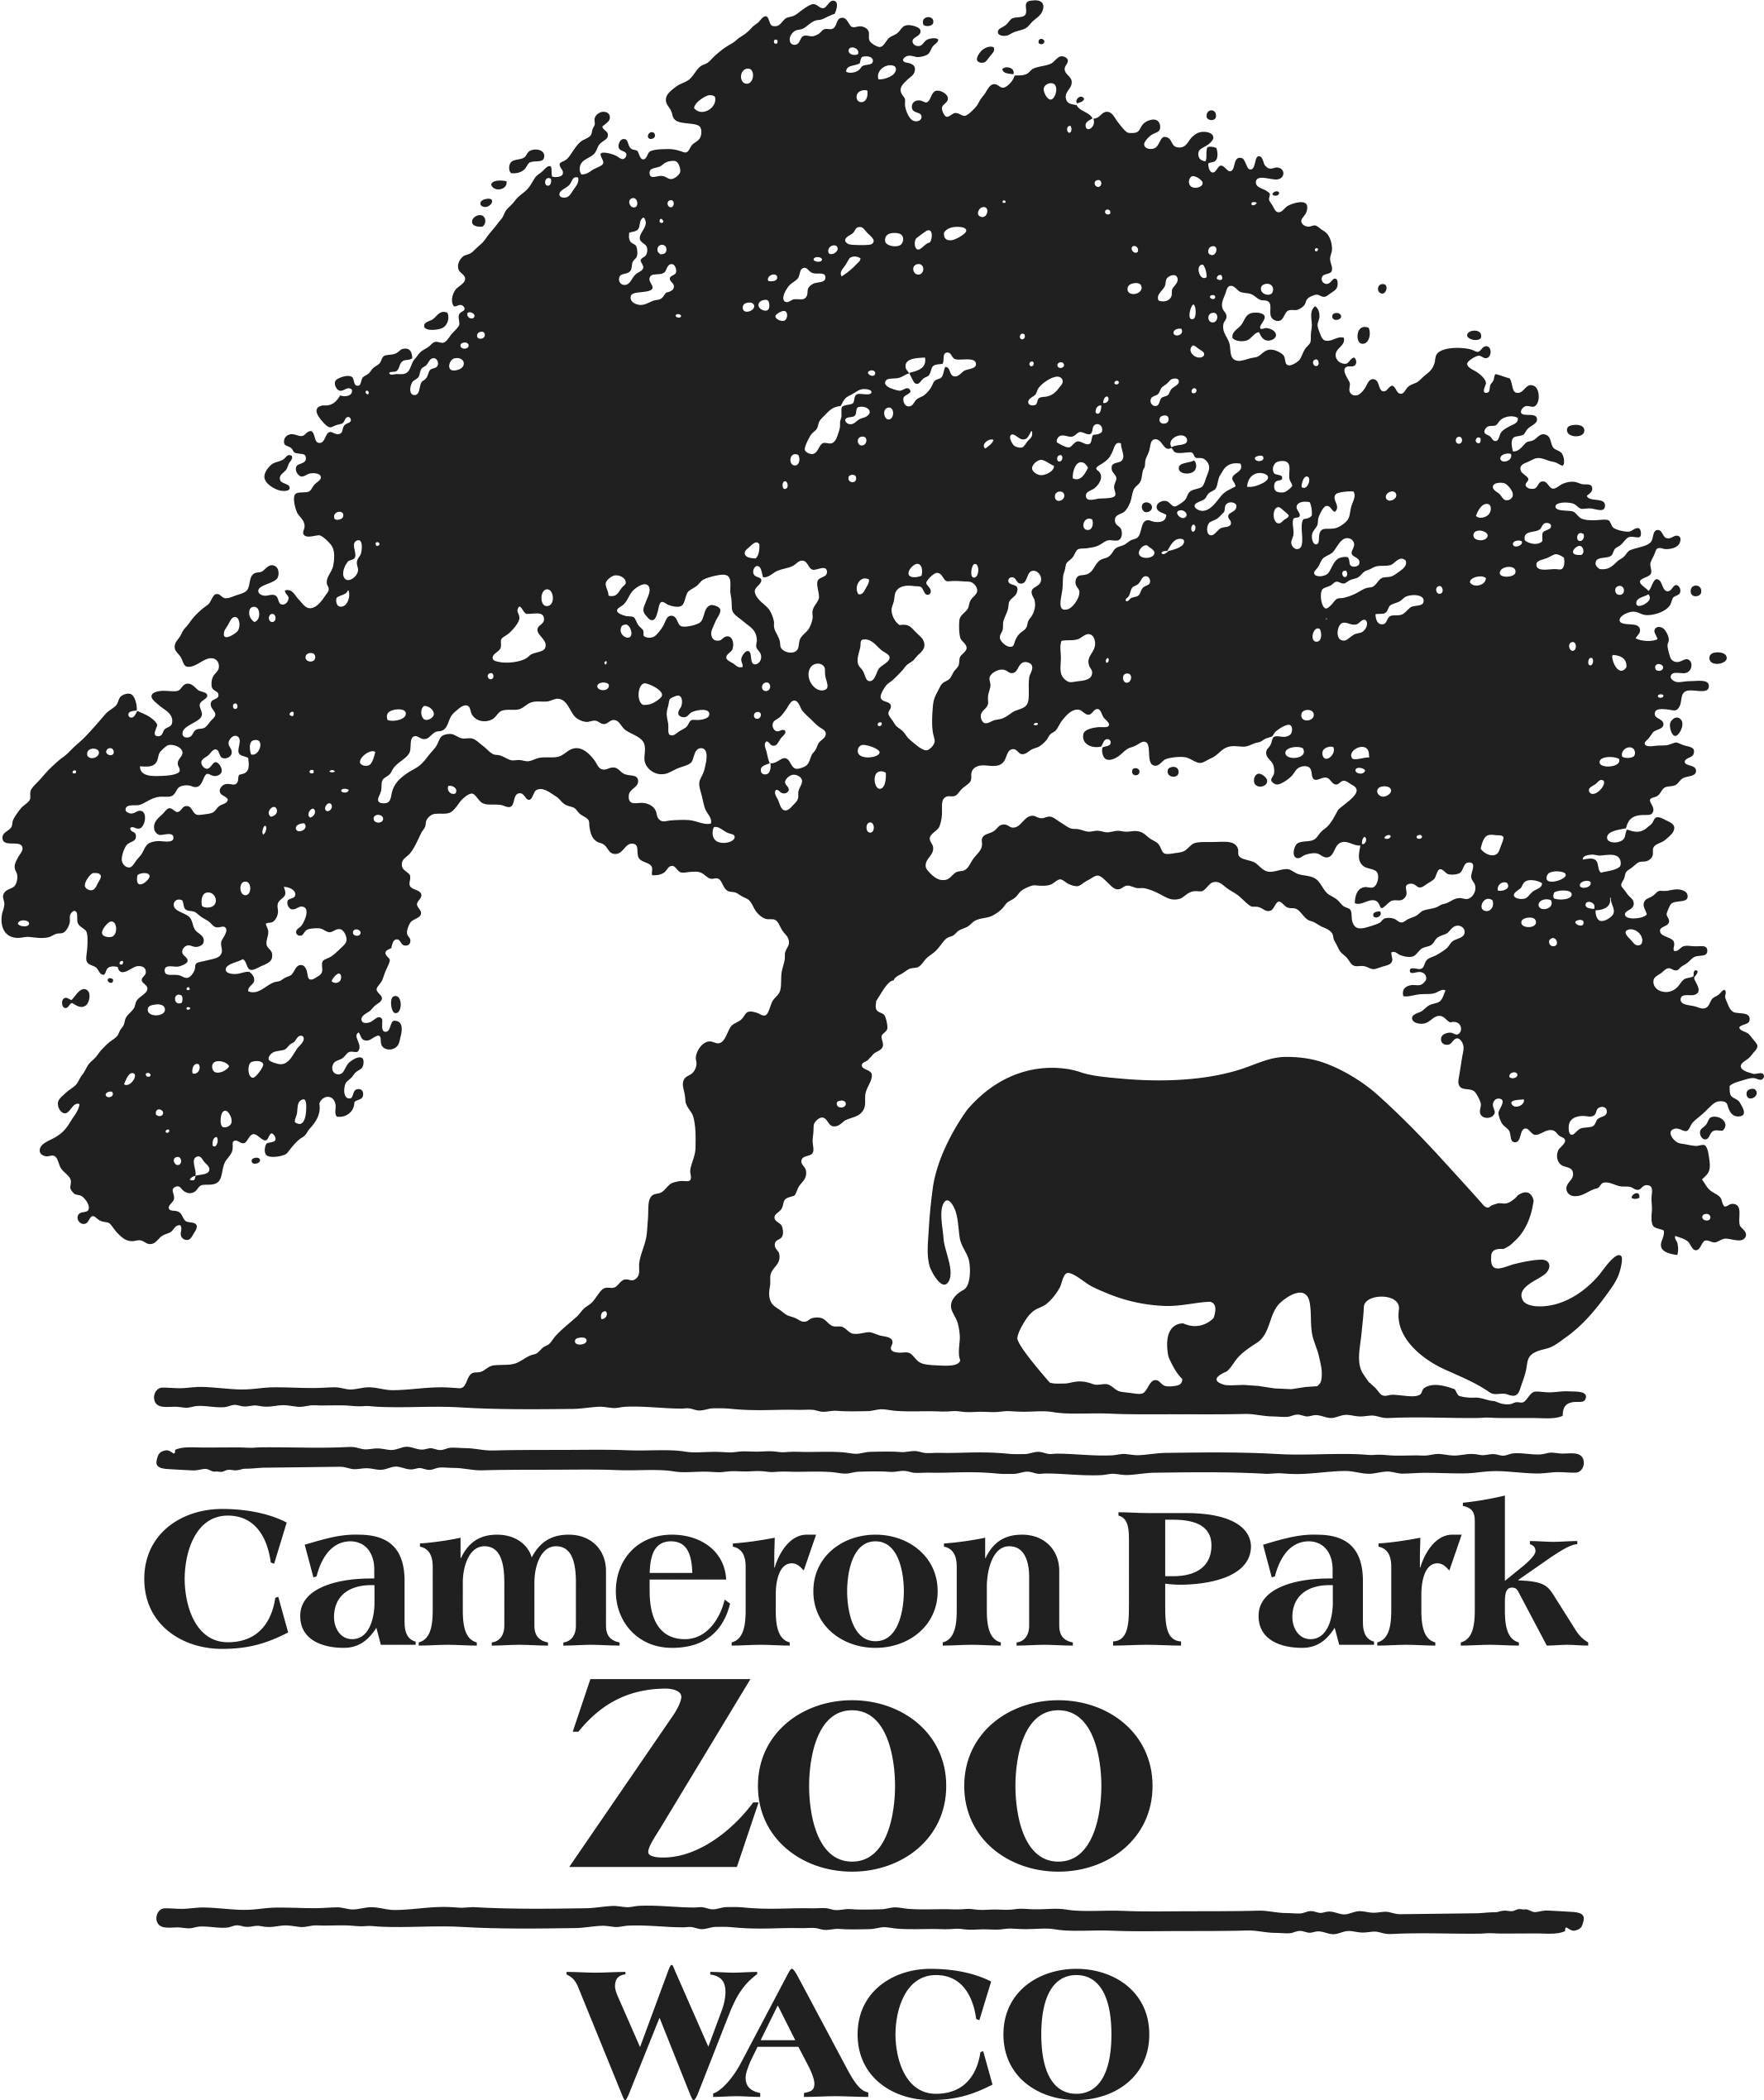 Save a Spider Day - Cameron Park Zoo